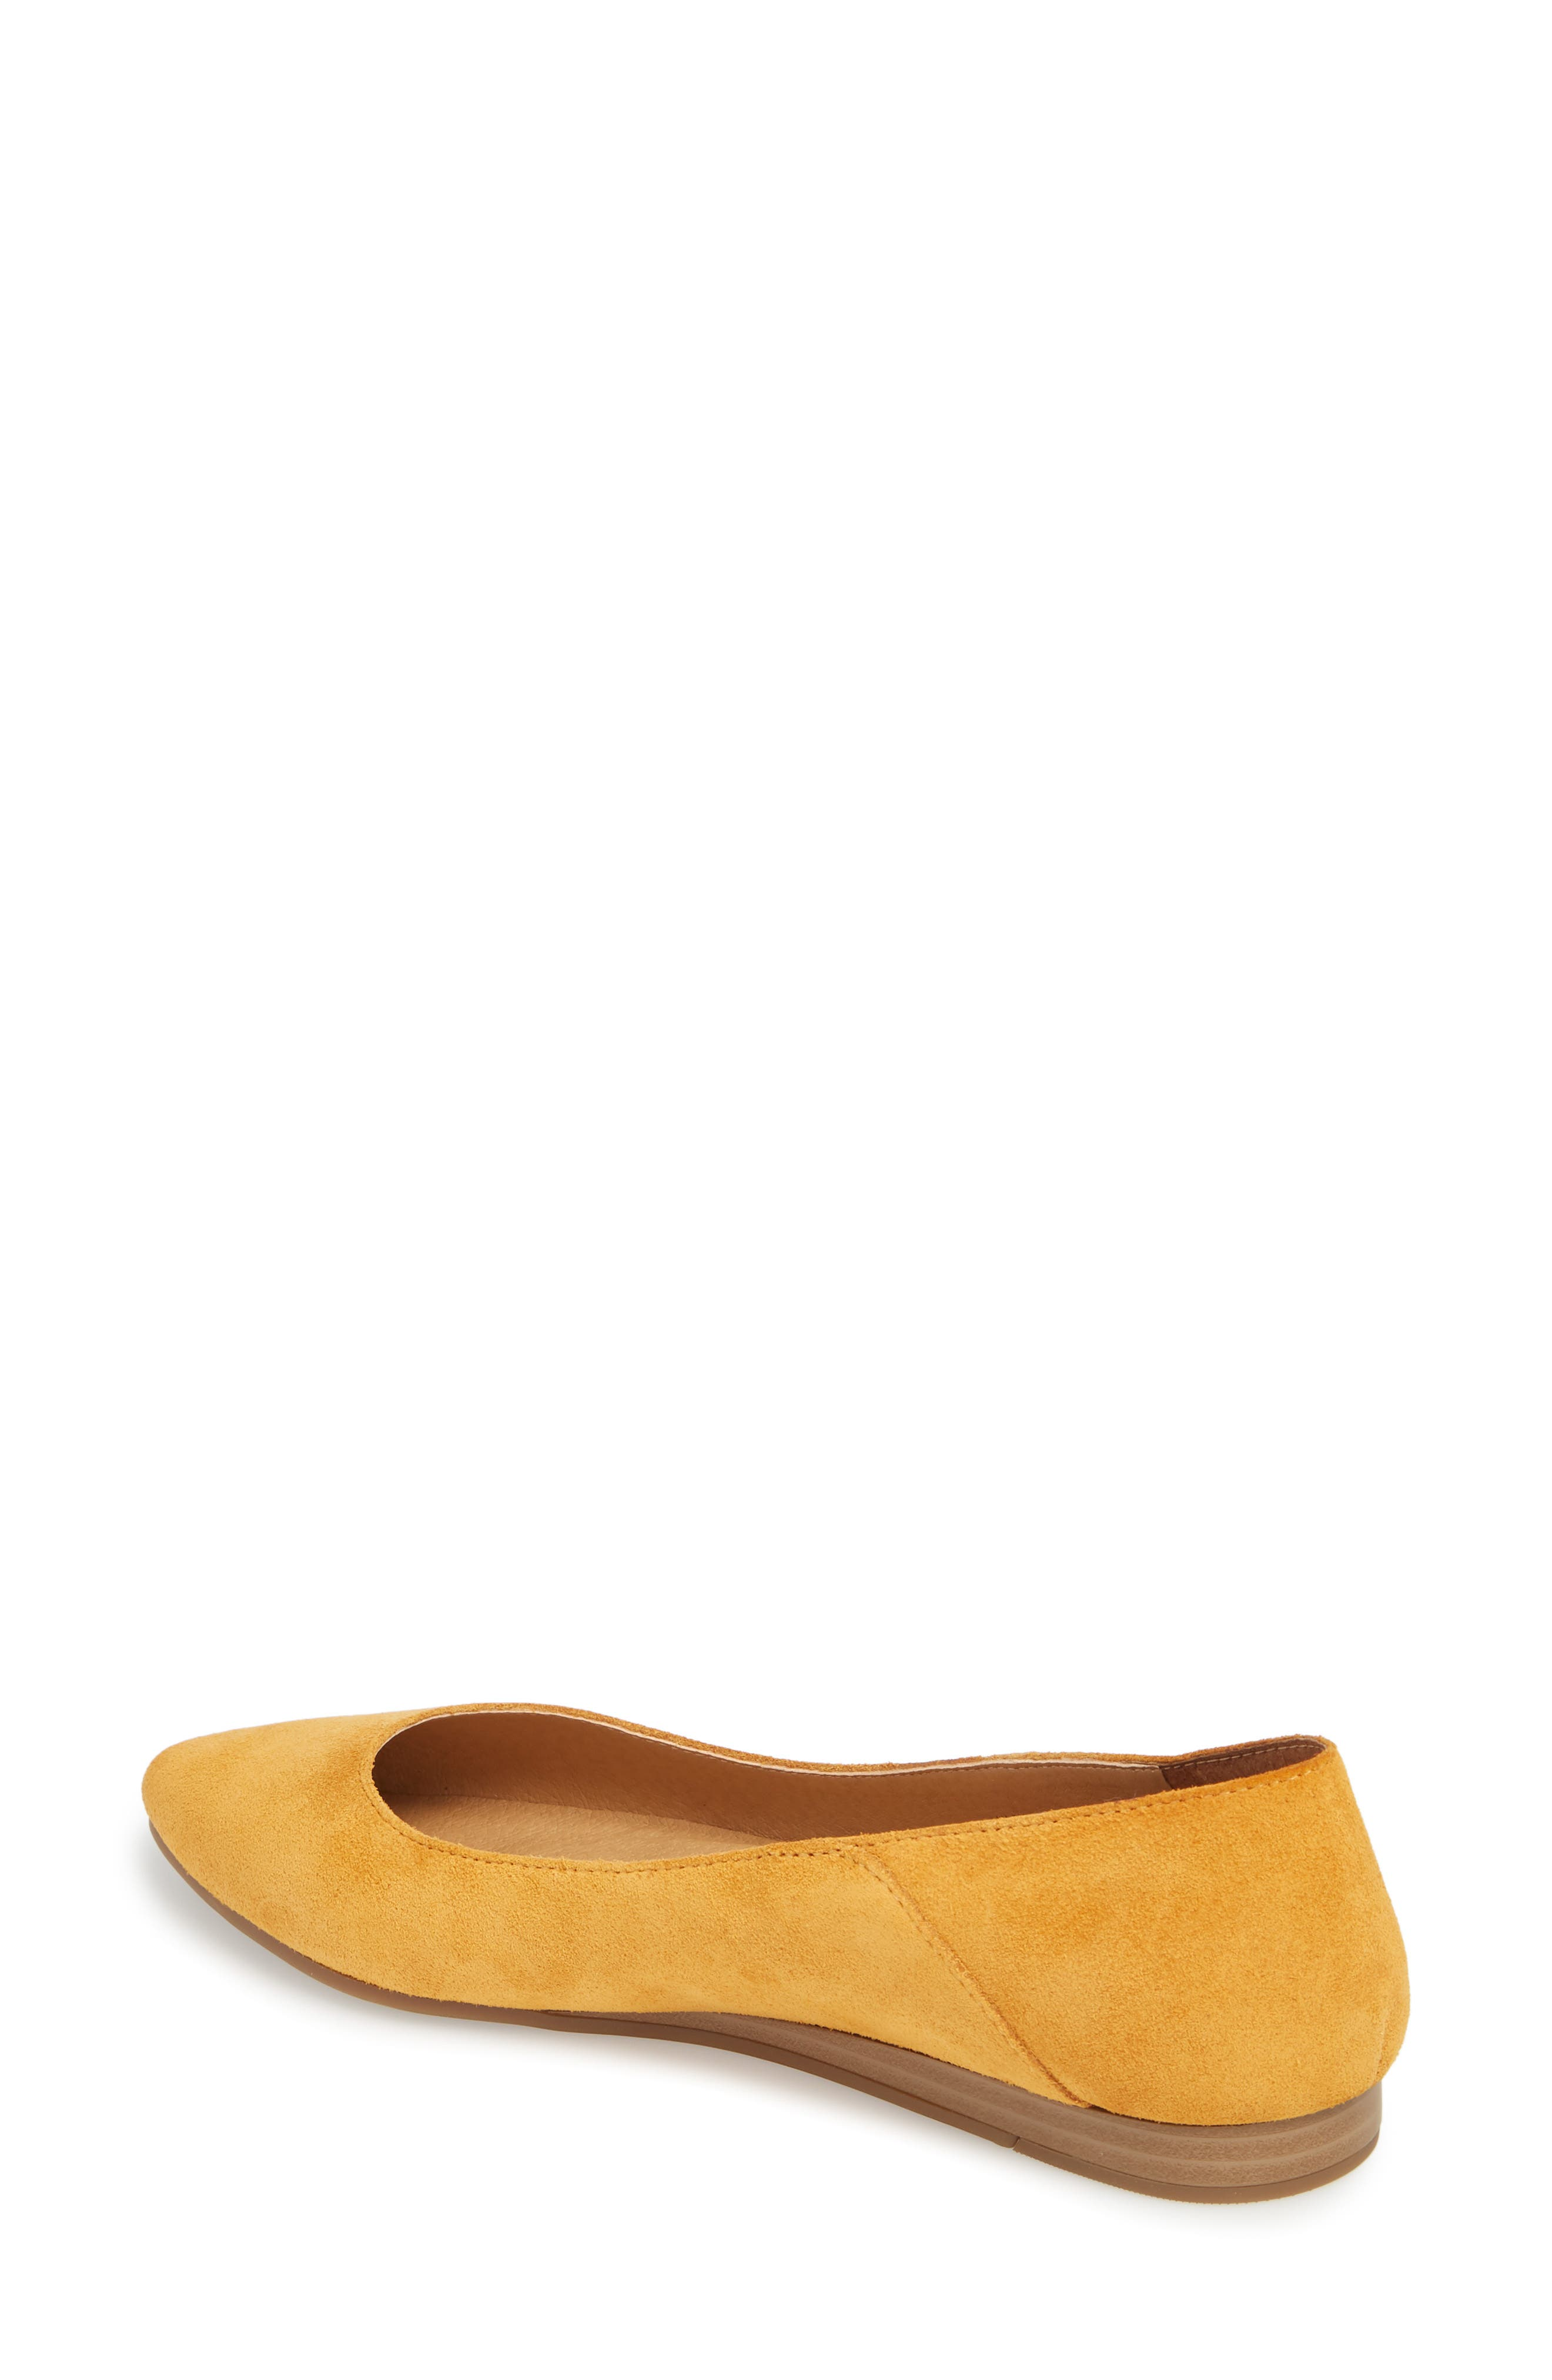 Bylando Flat,                             Alternate thumbnail 2, color,                             Inca Gold Suede